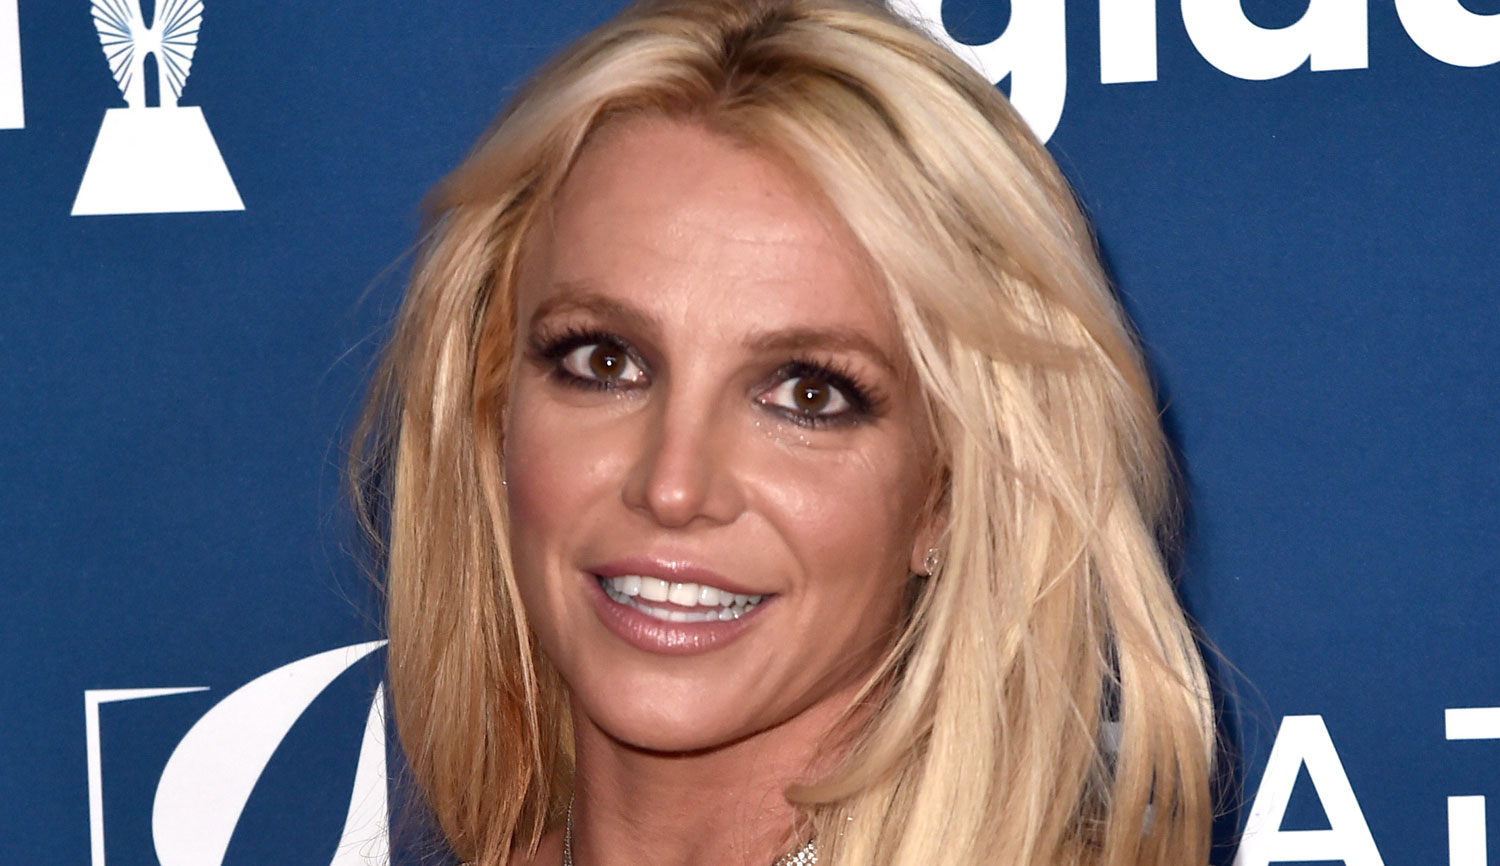 Britney Spears Reveals The Fast Food Item She Loves To Order